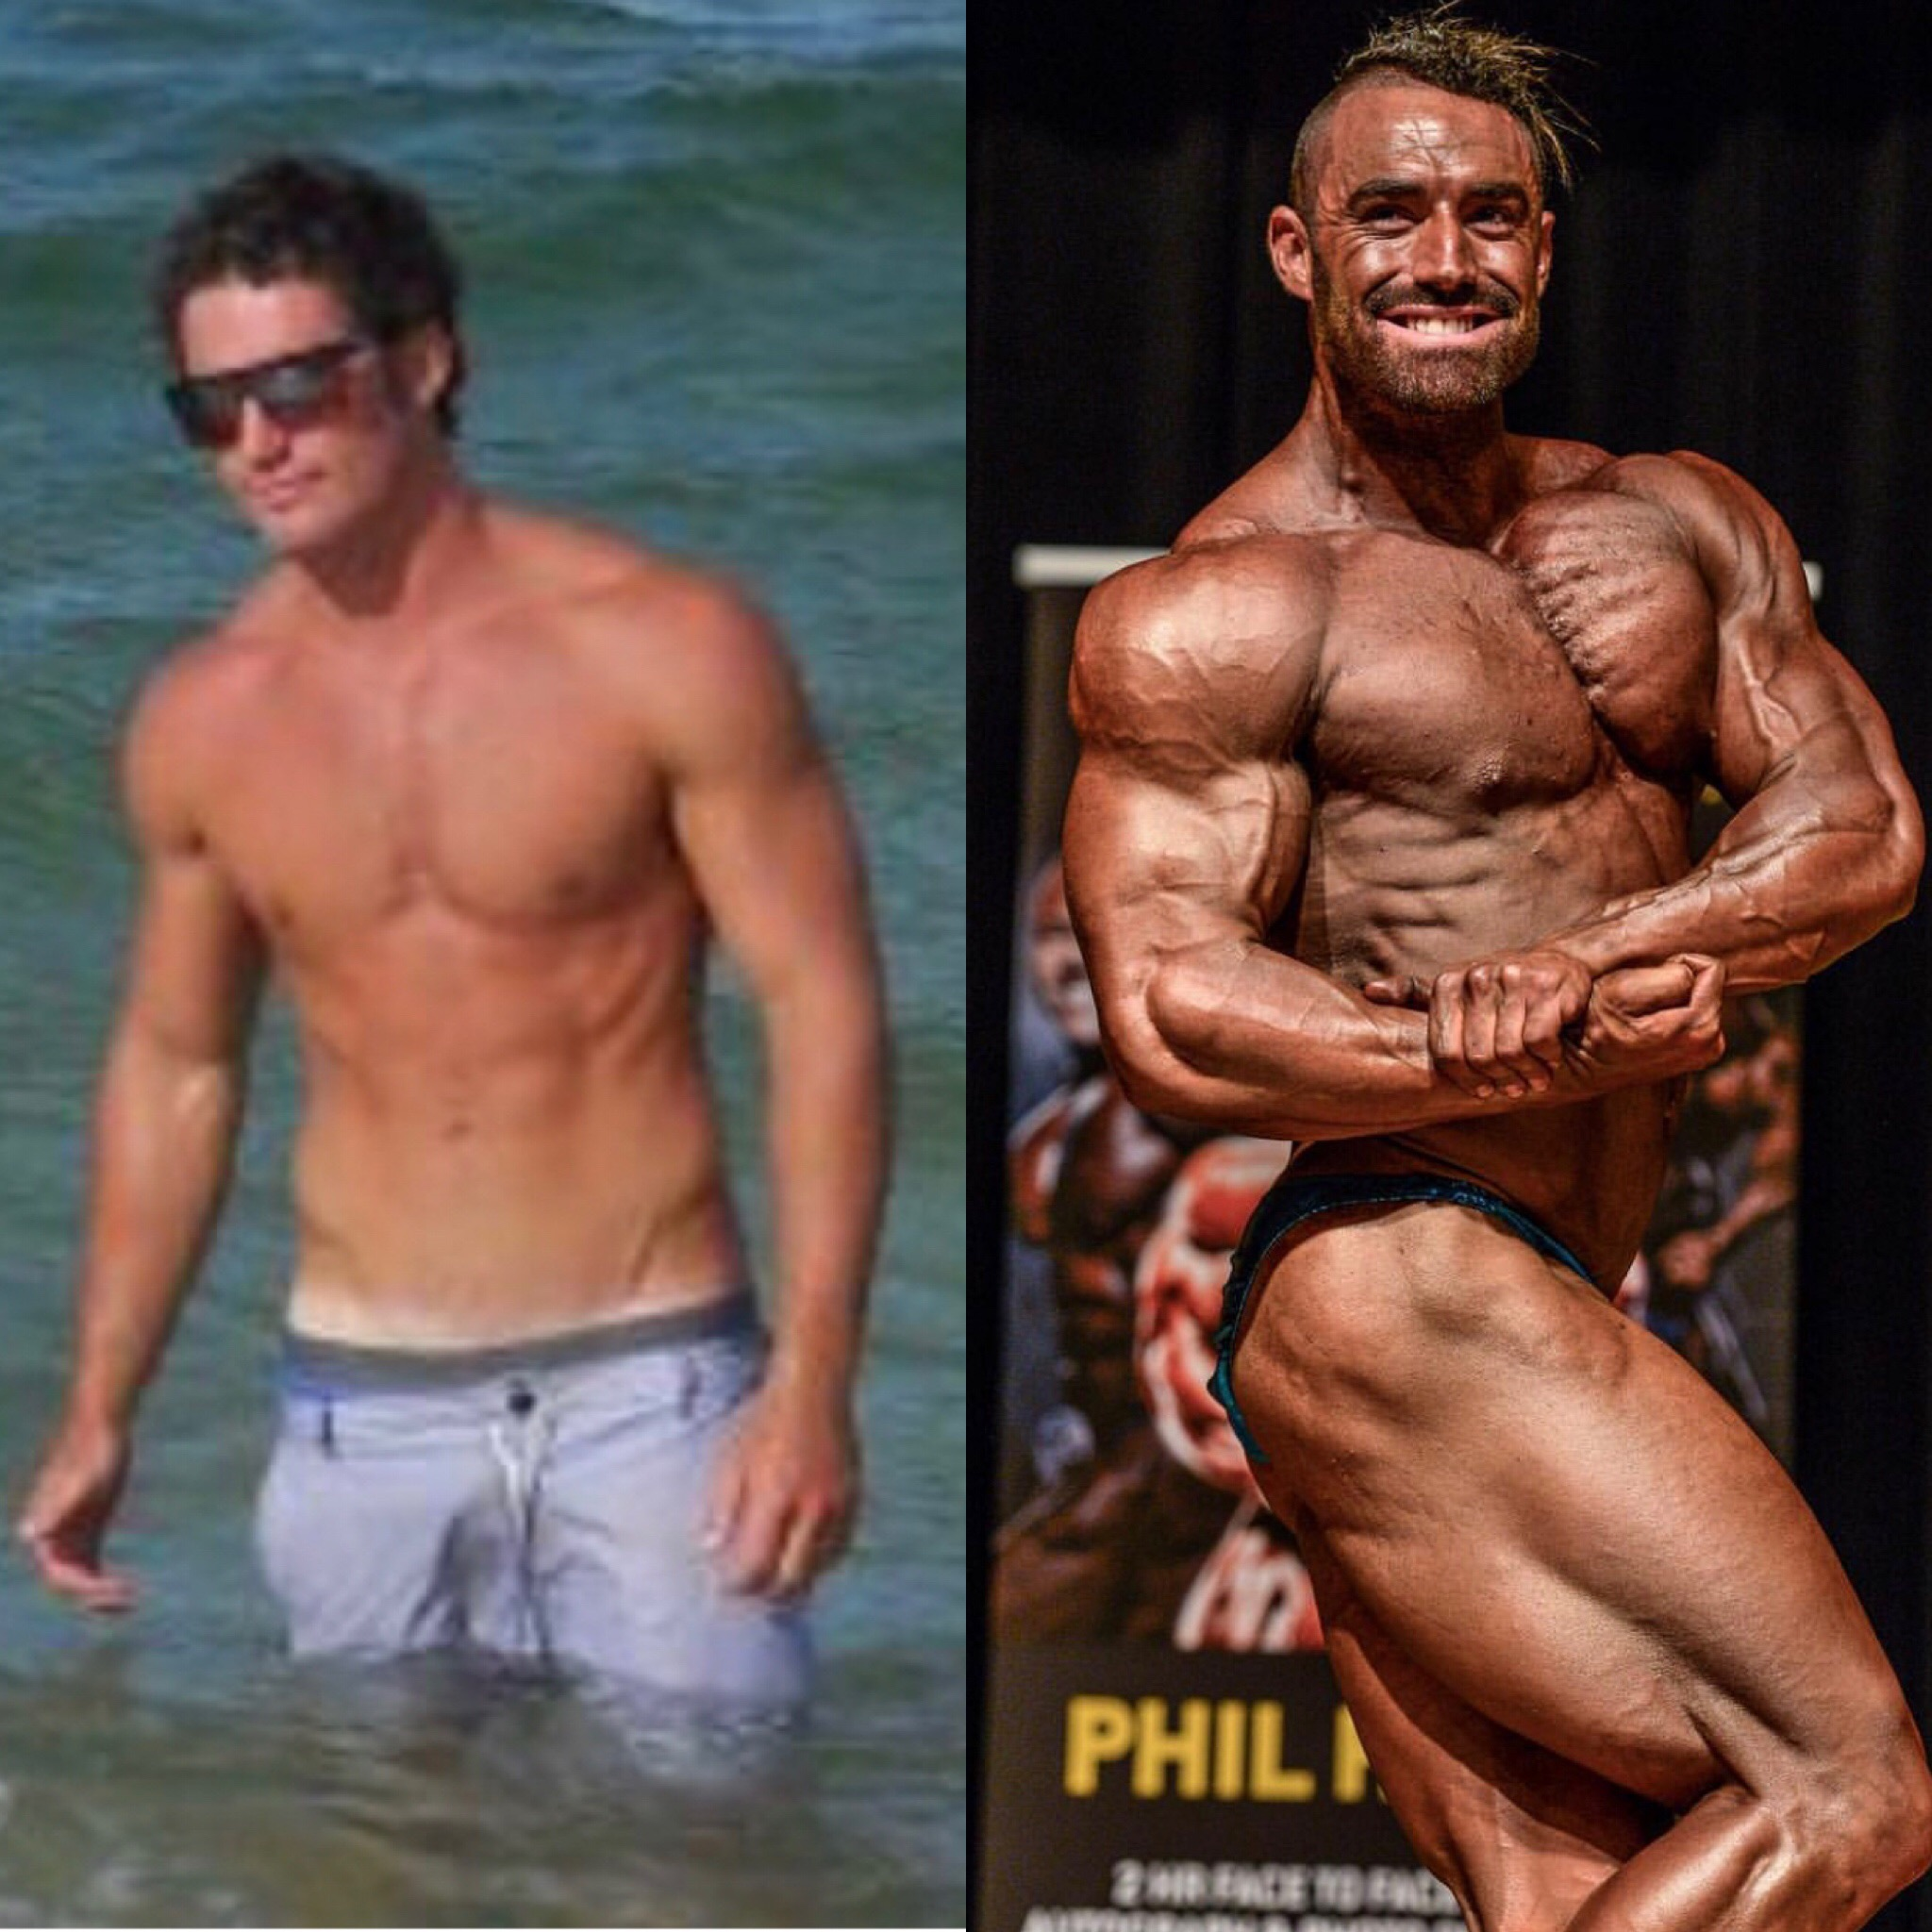 Before photo 6 months into training - After photo IFBB Nationals 2017 (6 year difference)